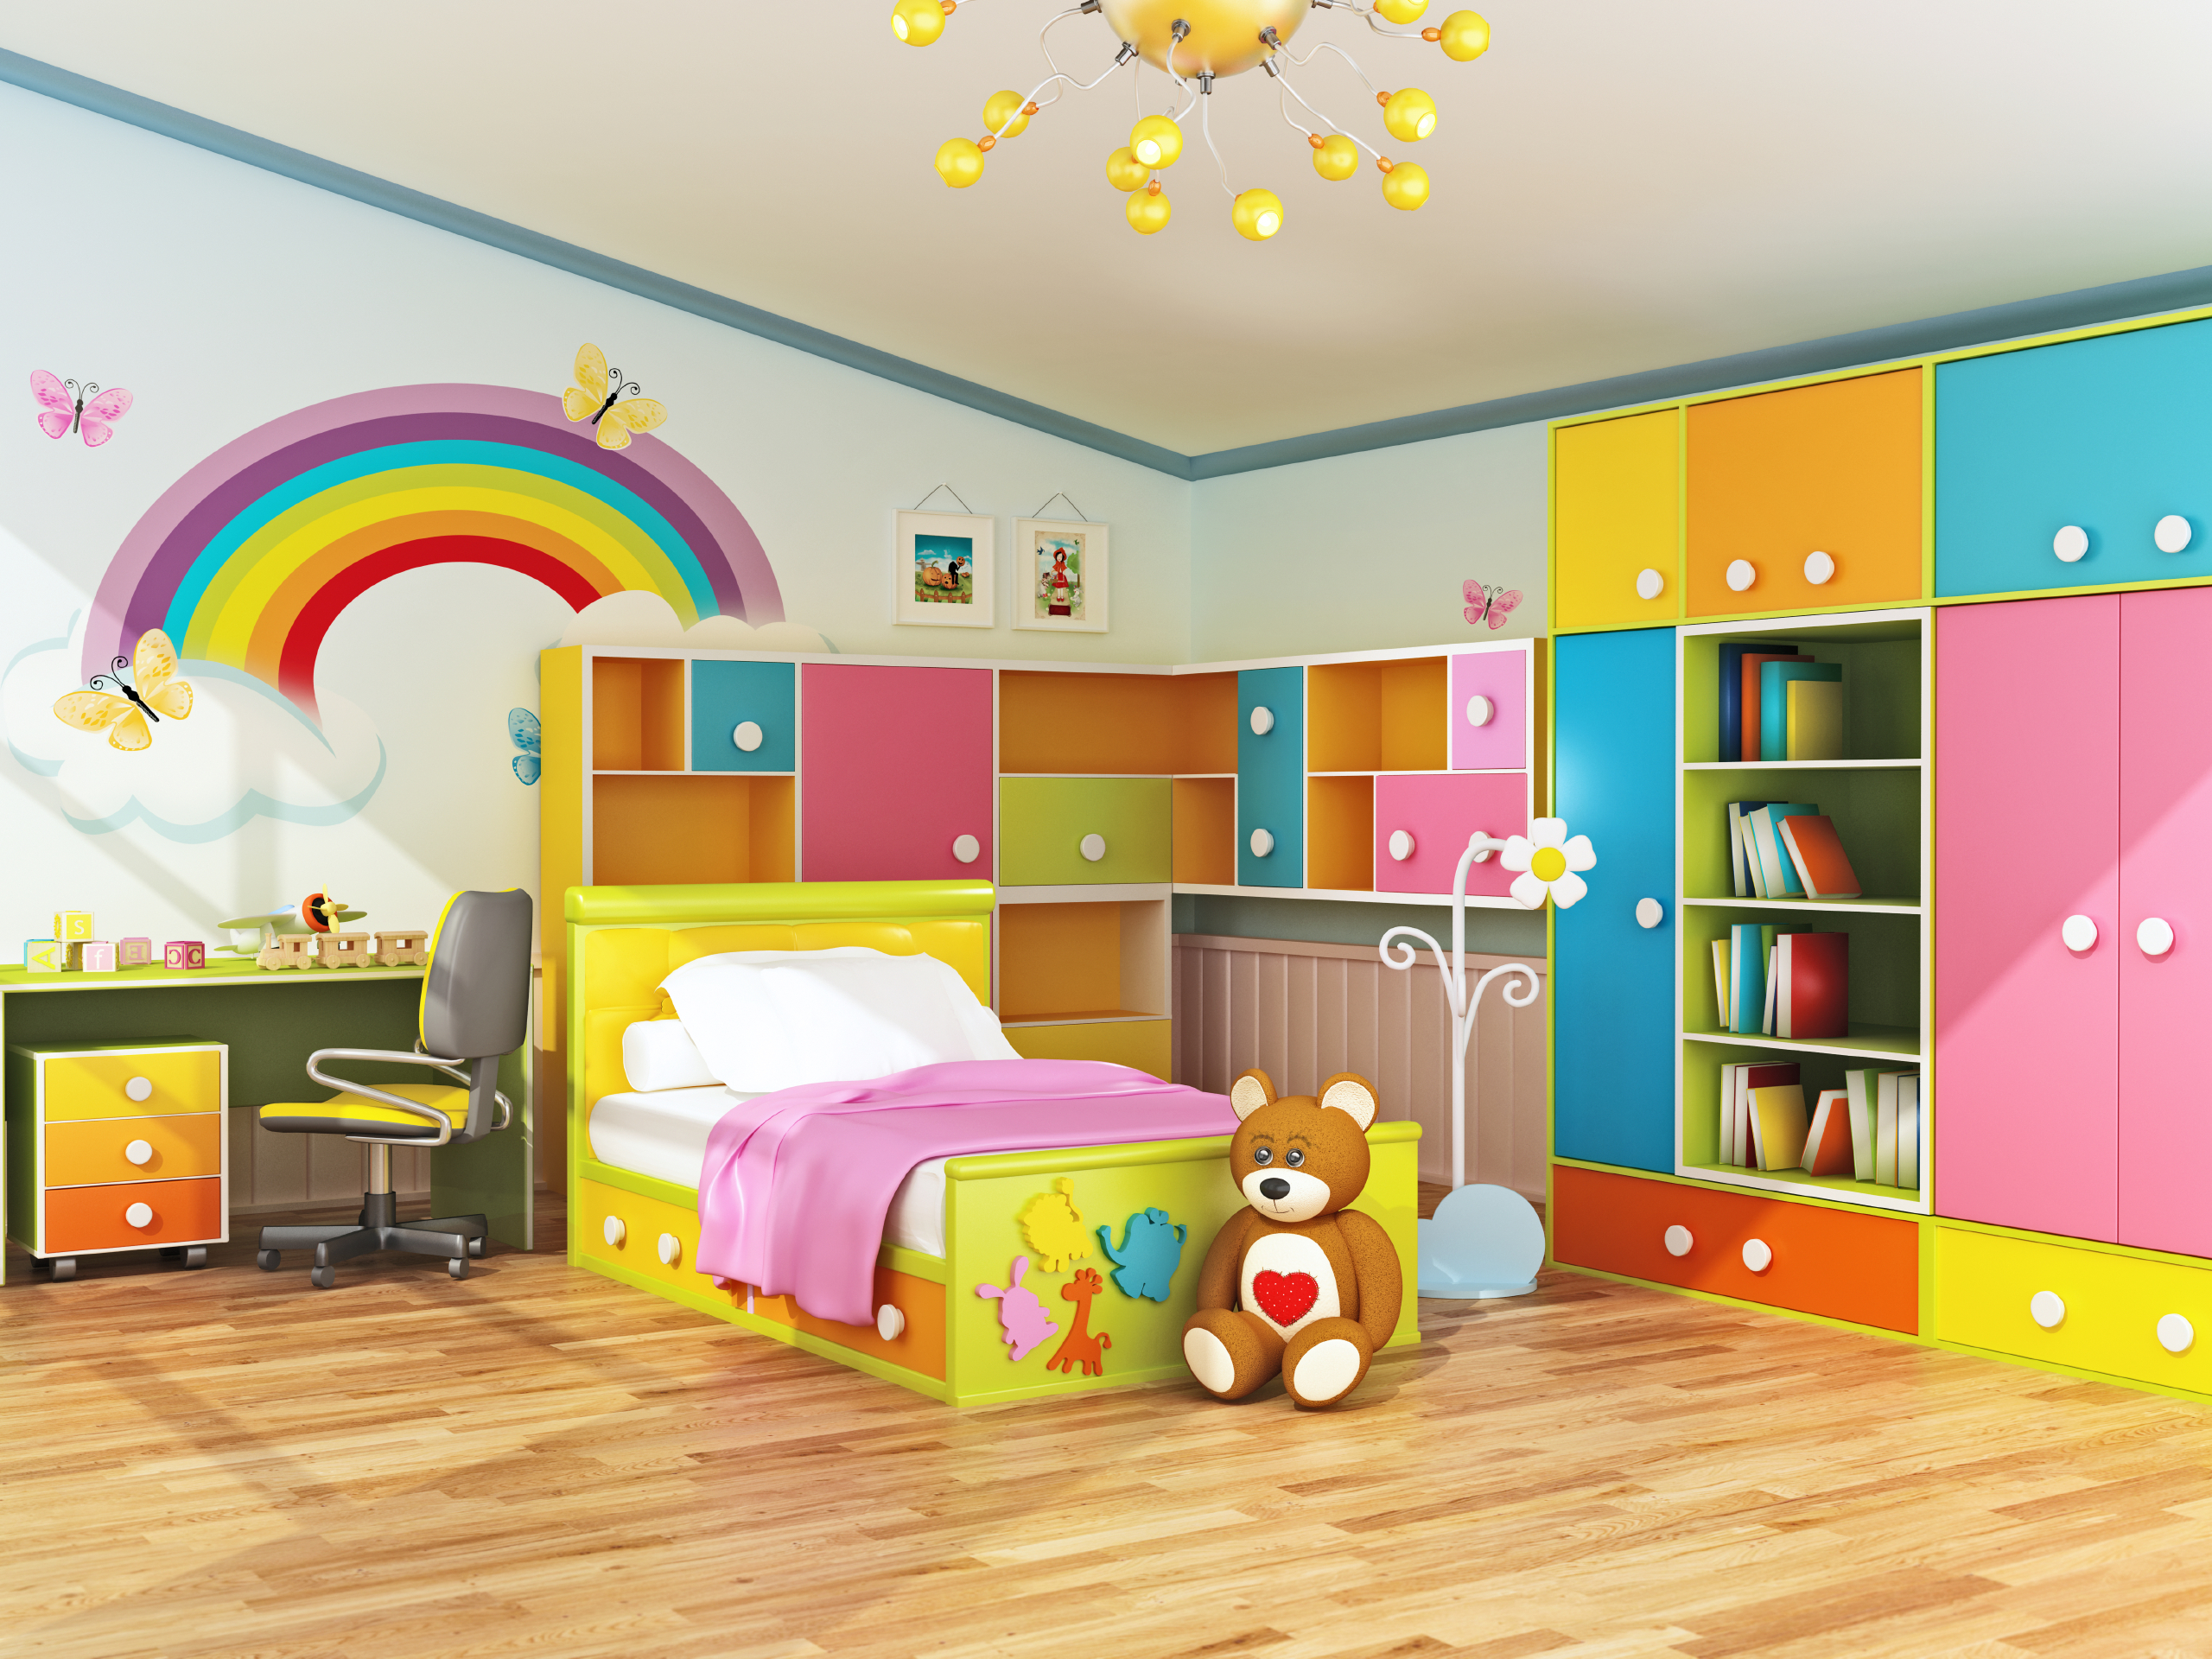 plan ahead when decorating kids 39 bedrooms rismedia 39 s housecall. Black Bedroom Furniture Sets. Home Design Ideas